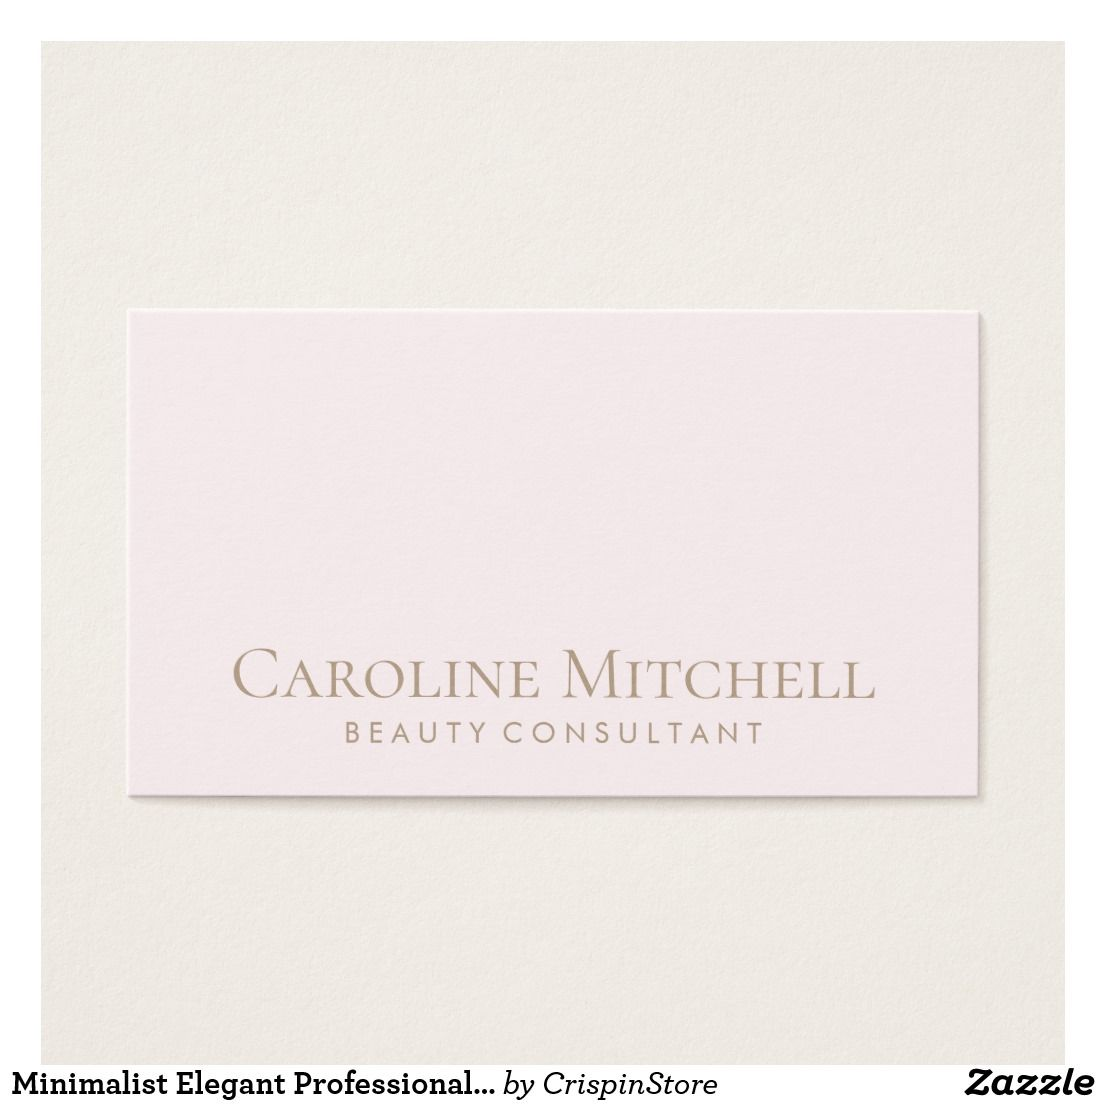 Minimalist elegant professional chic light pink business card minimalist elegant professional chic light pink business card reheart Images